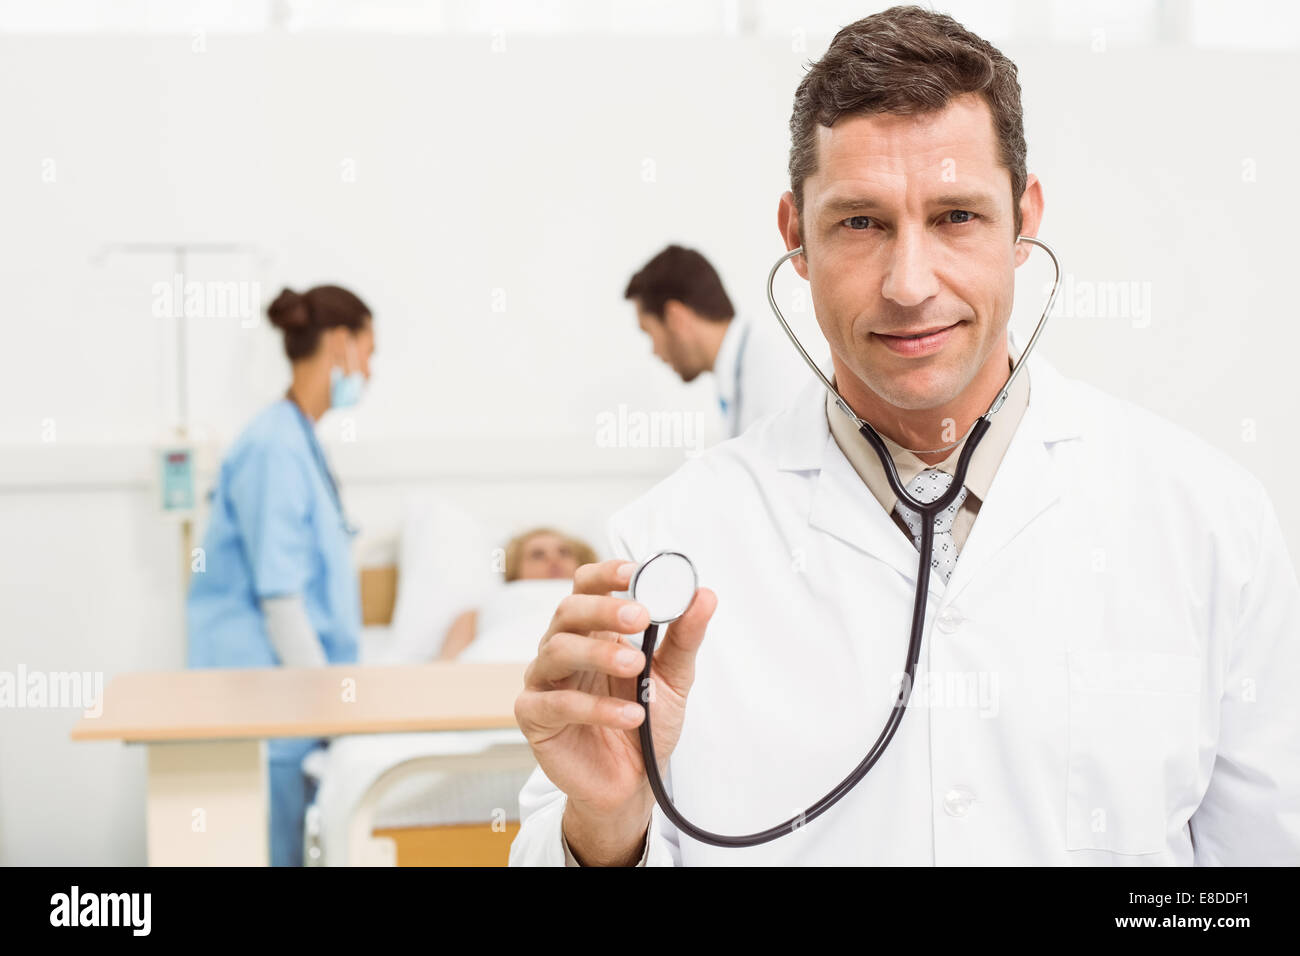 Doctor using stethoscope with colleagues and patient behind - Stock Image